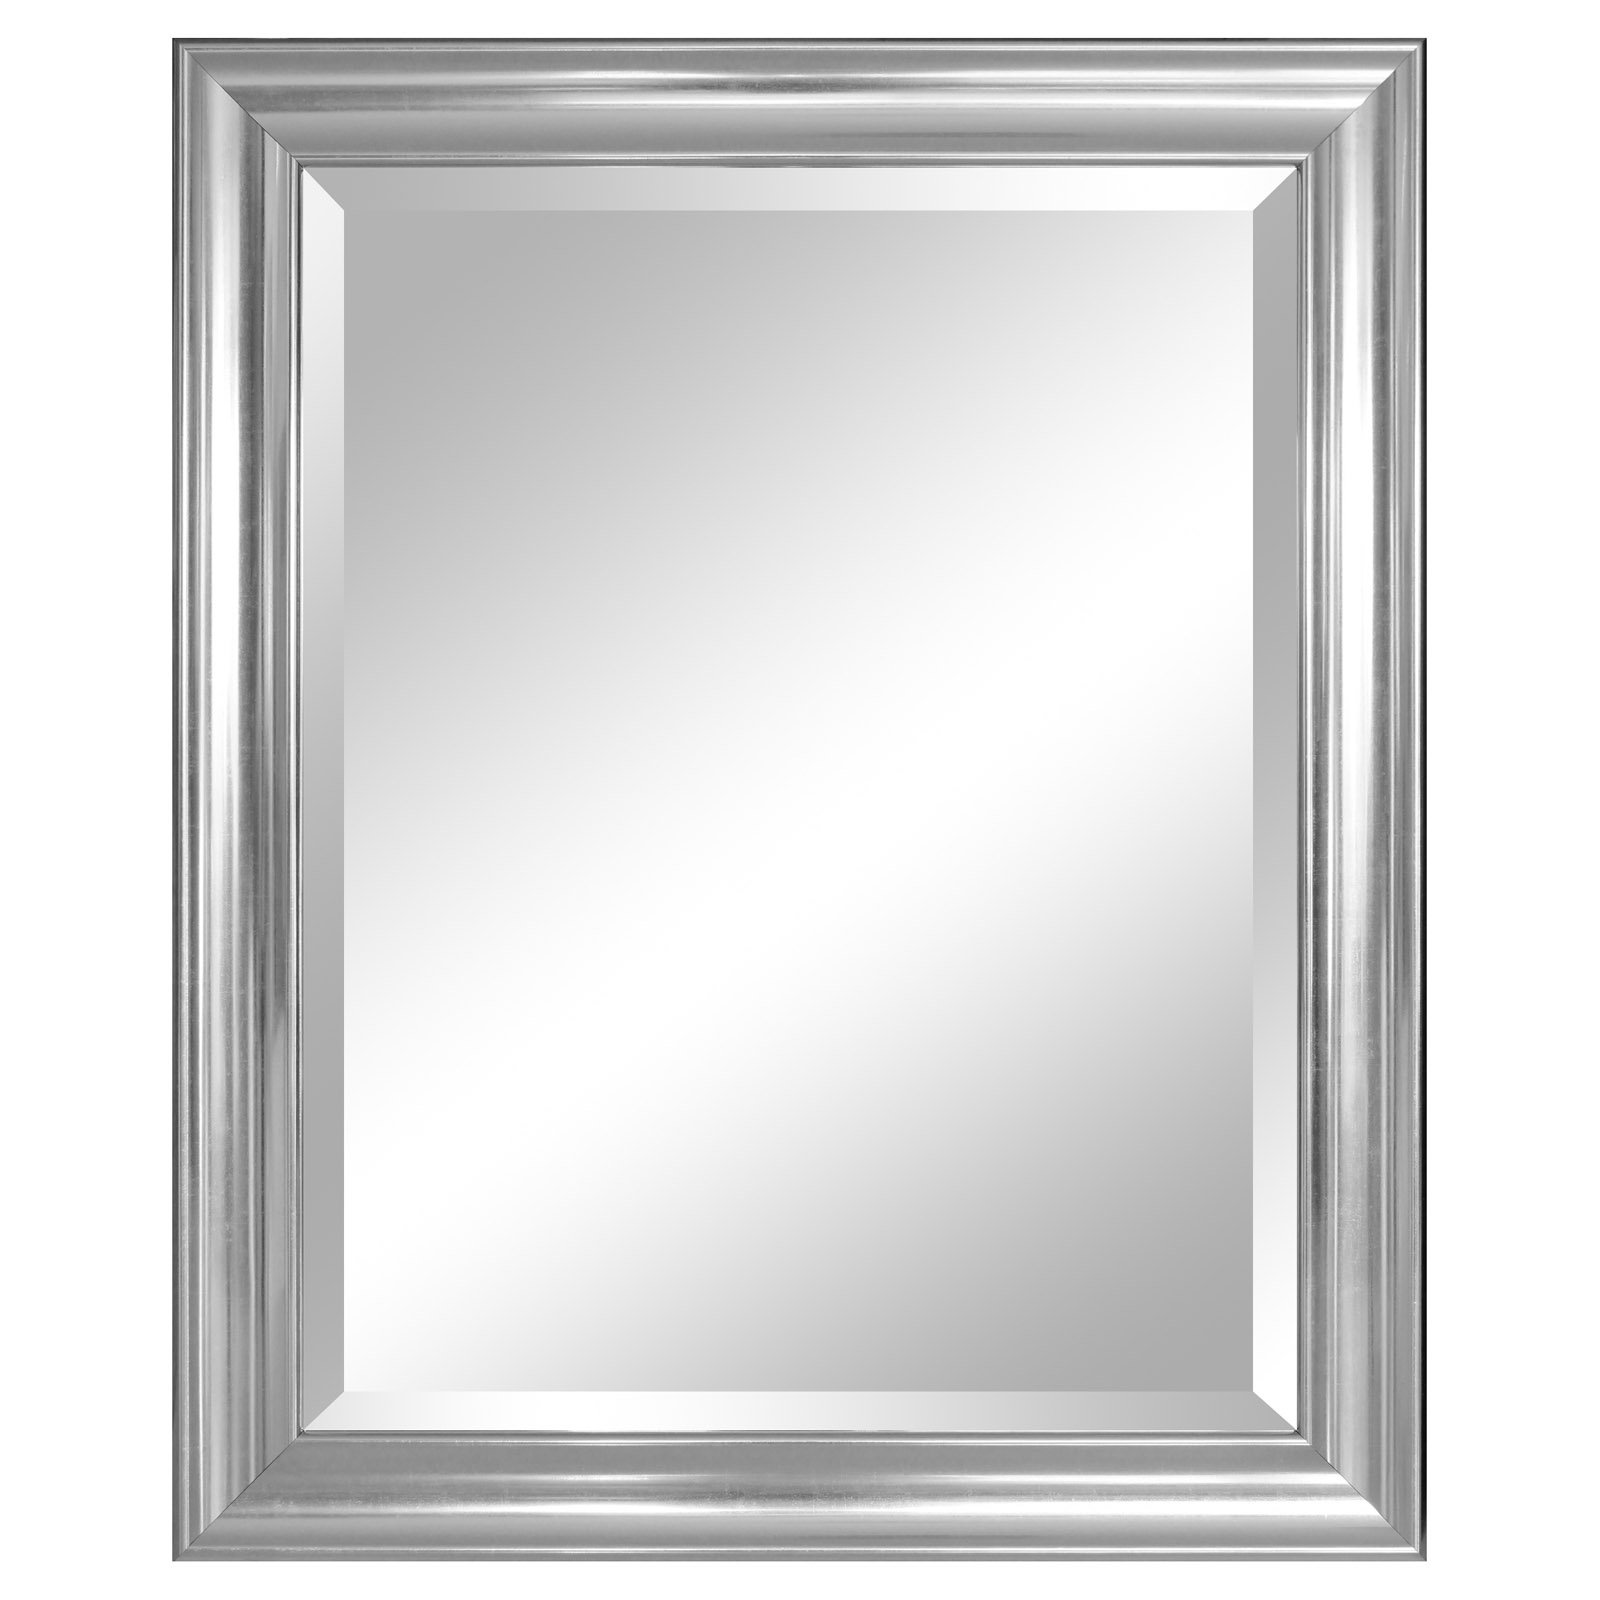 Click here to buy Crackled Silver Wall Mirror by Alpine Art and Mirror.